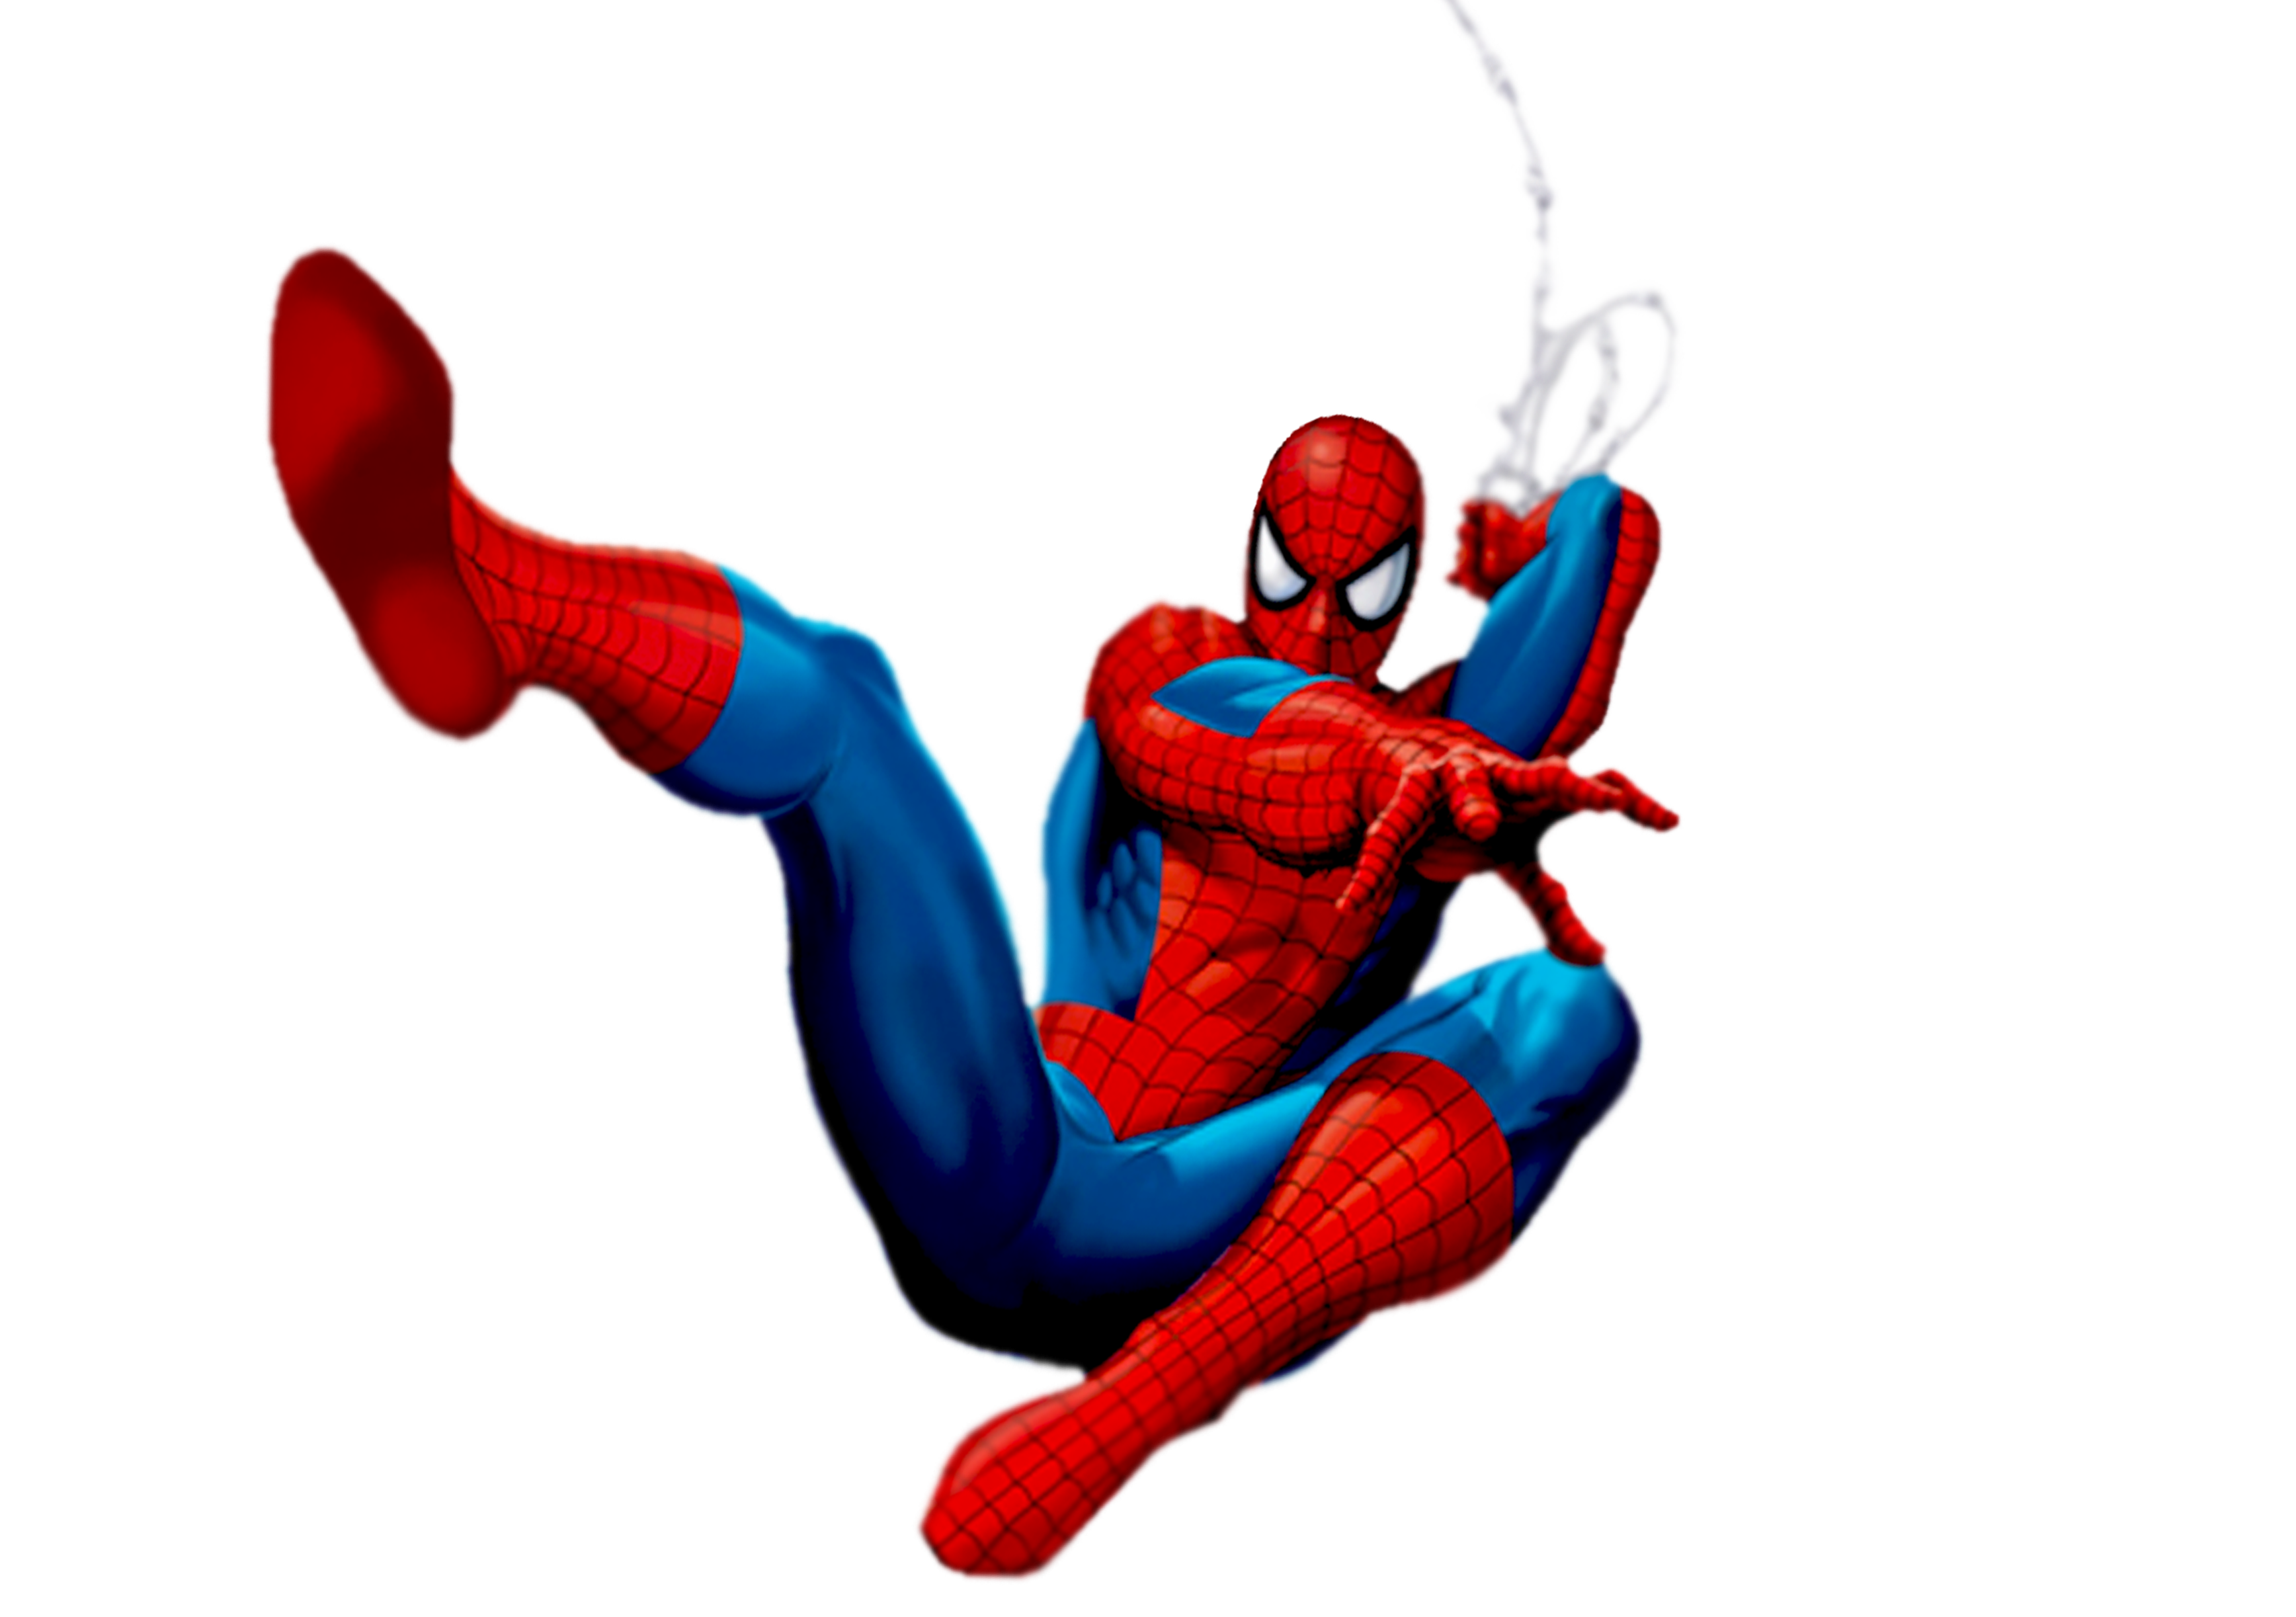 Spider-Man PNG in High Resolution 20695 - Web Icons PNG